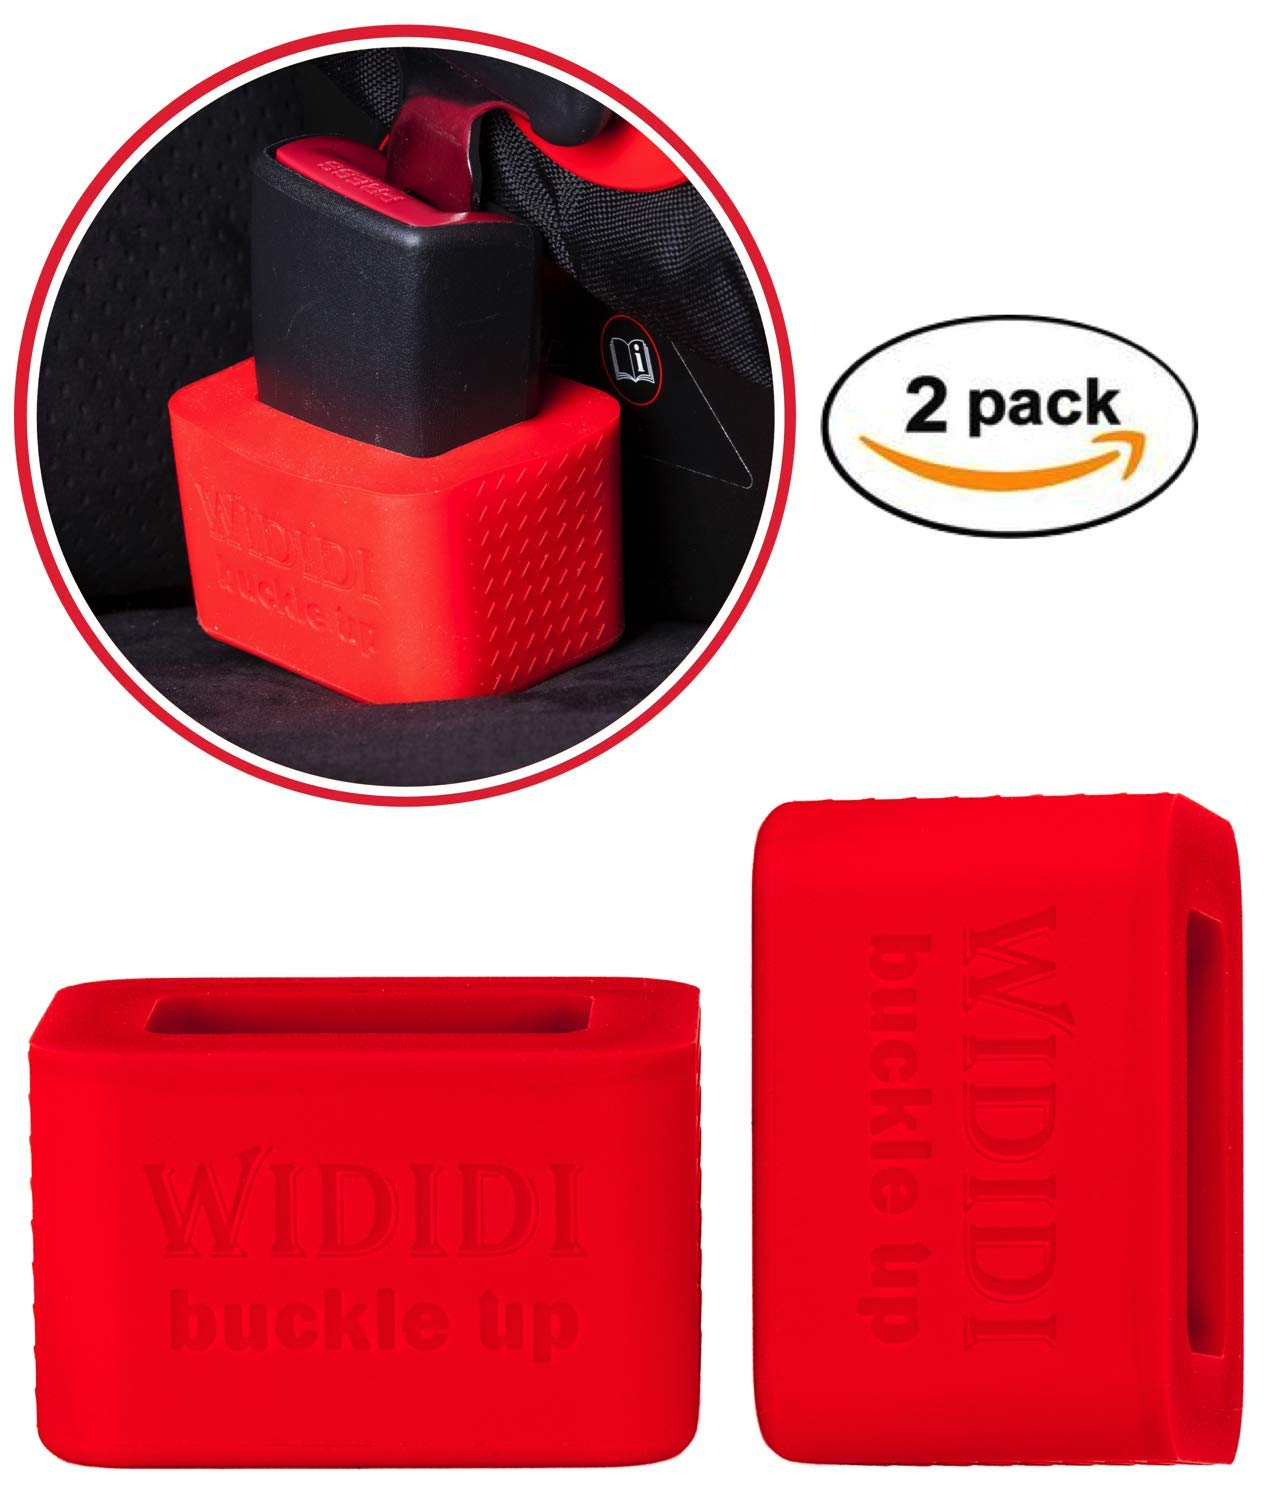 2 Pack Car Seat Belt Buckle Holder By Wididi Buckle Up Soft Silicone Easy Installation Holds Seatbelt